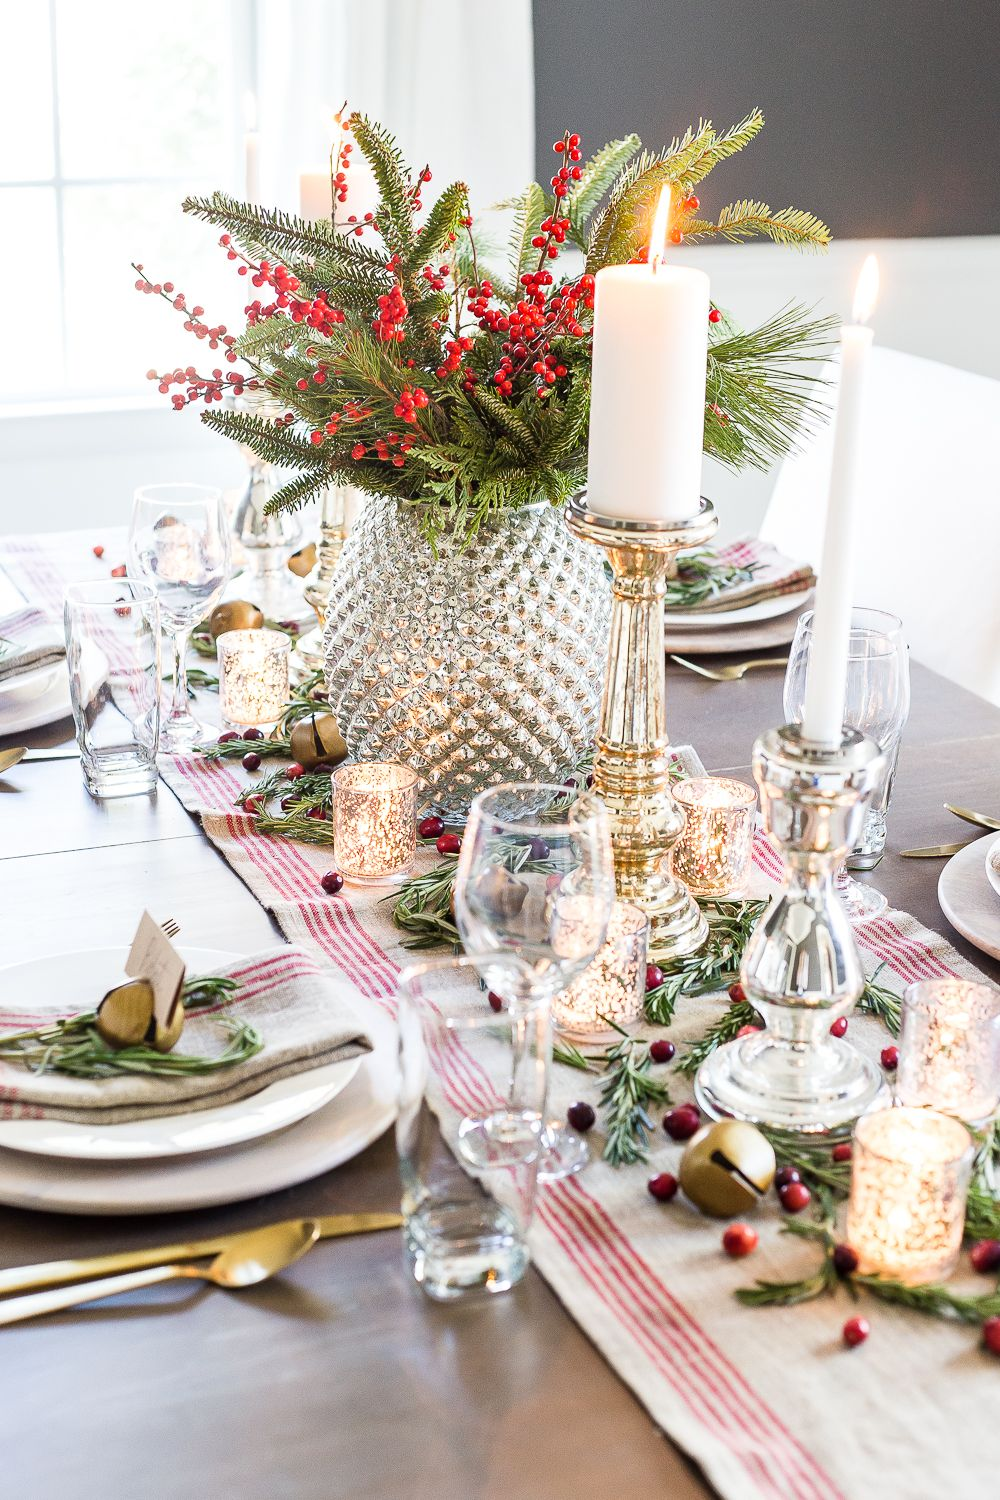 Mercury Glass Christmas Tablescape How to set up a vintage glam mercury glass Christmas tablescape with tips and sources for how to do it on a budget.